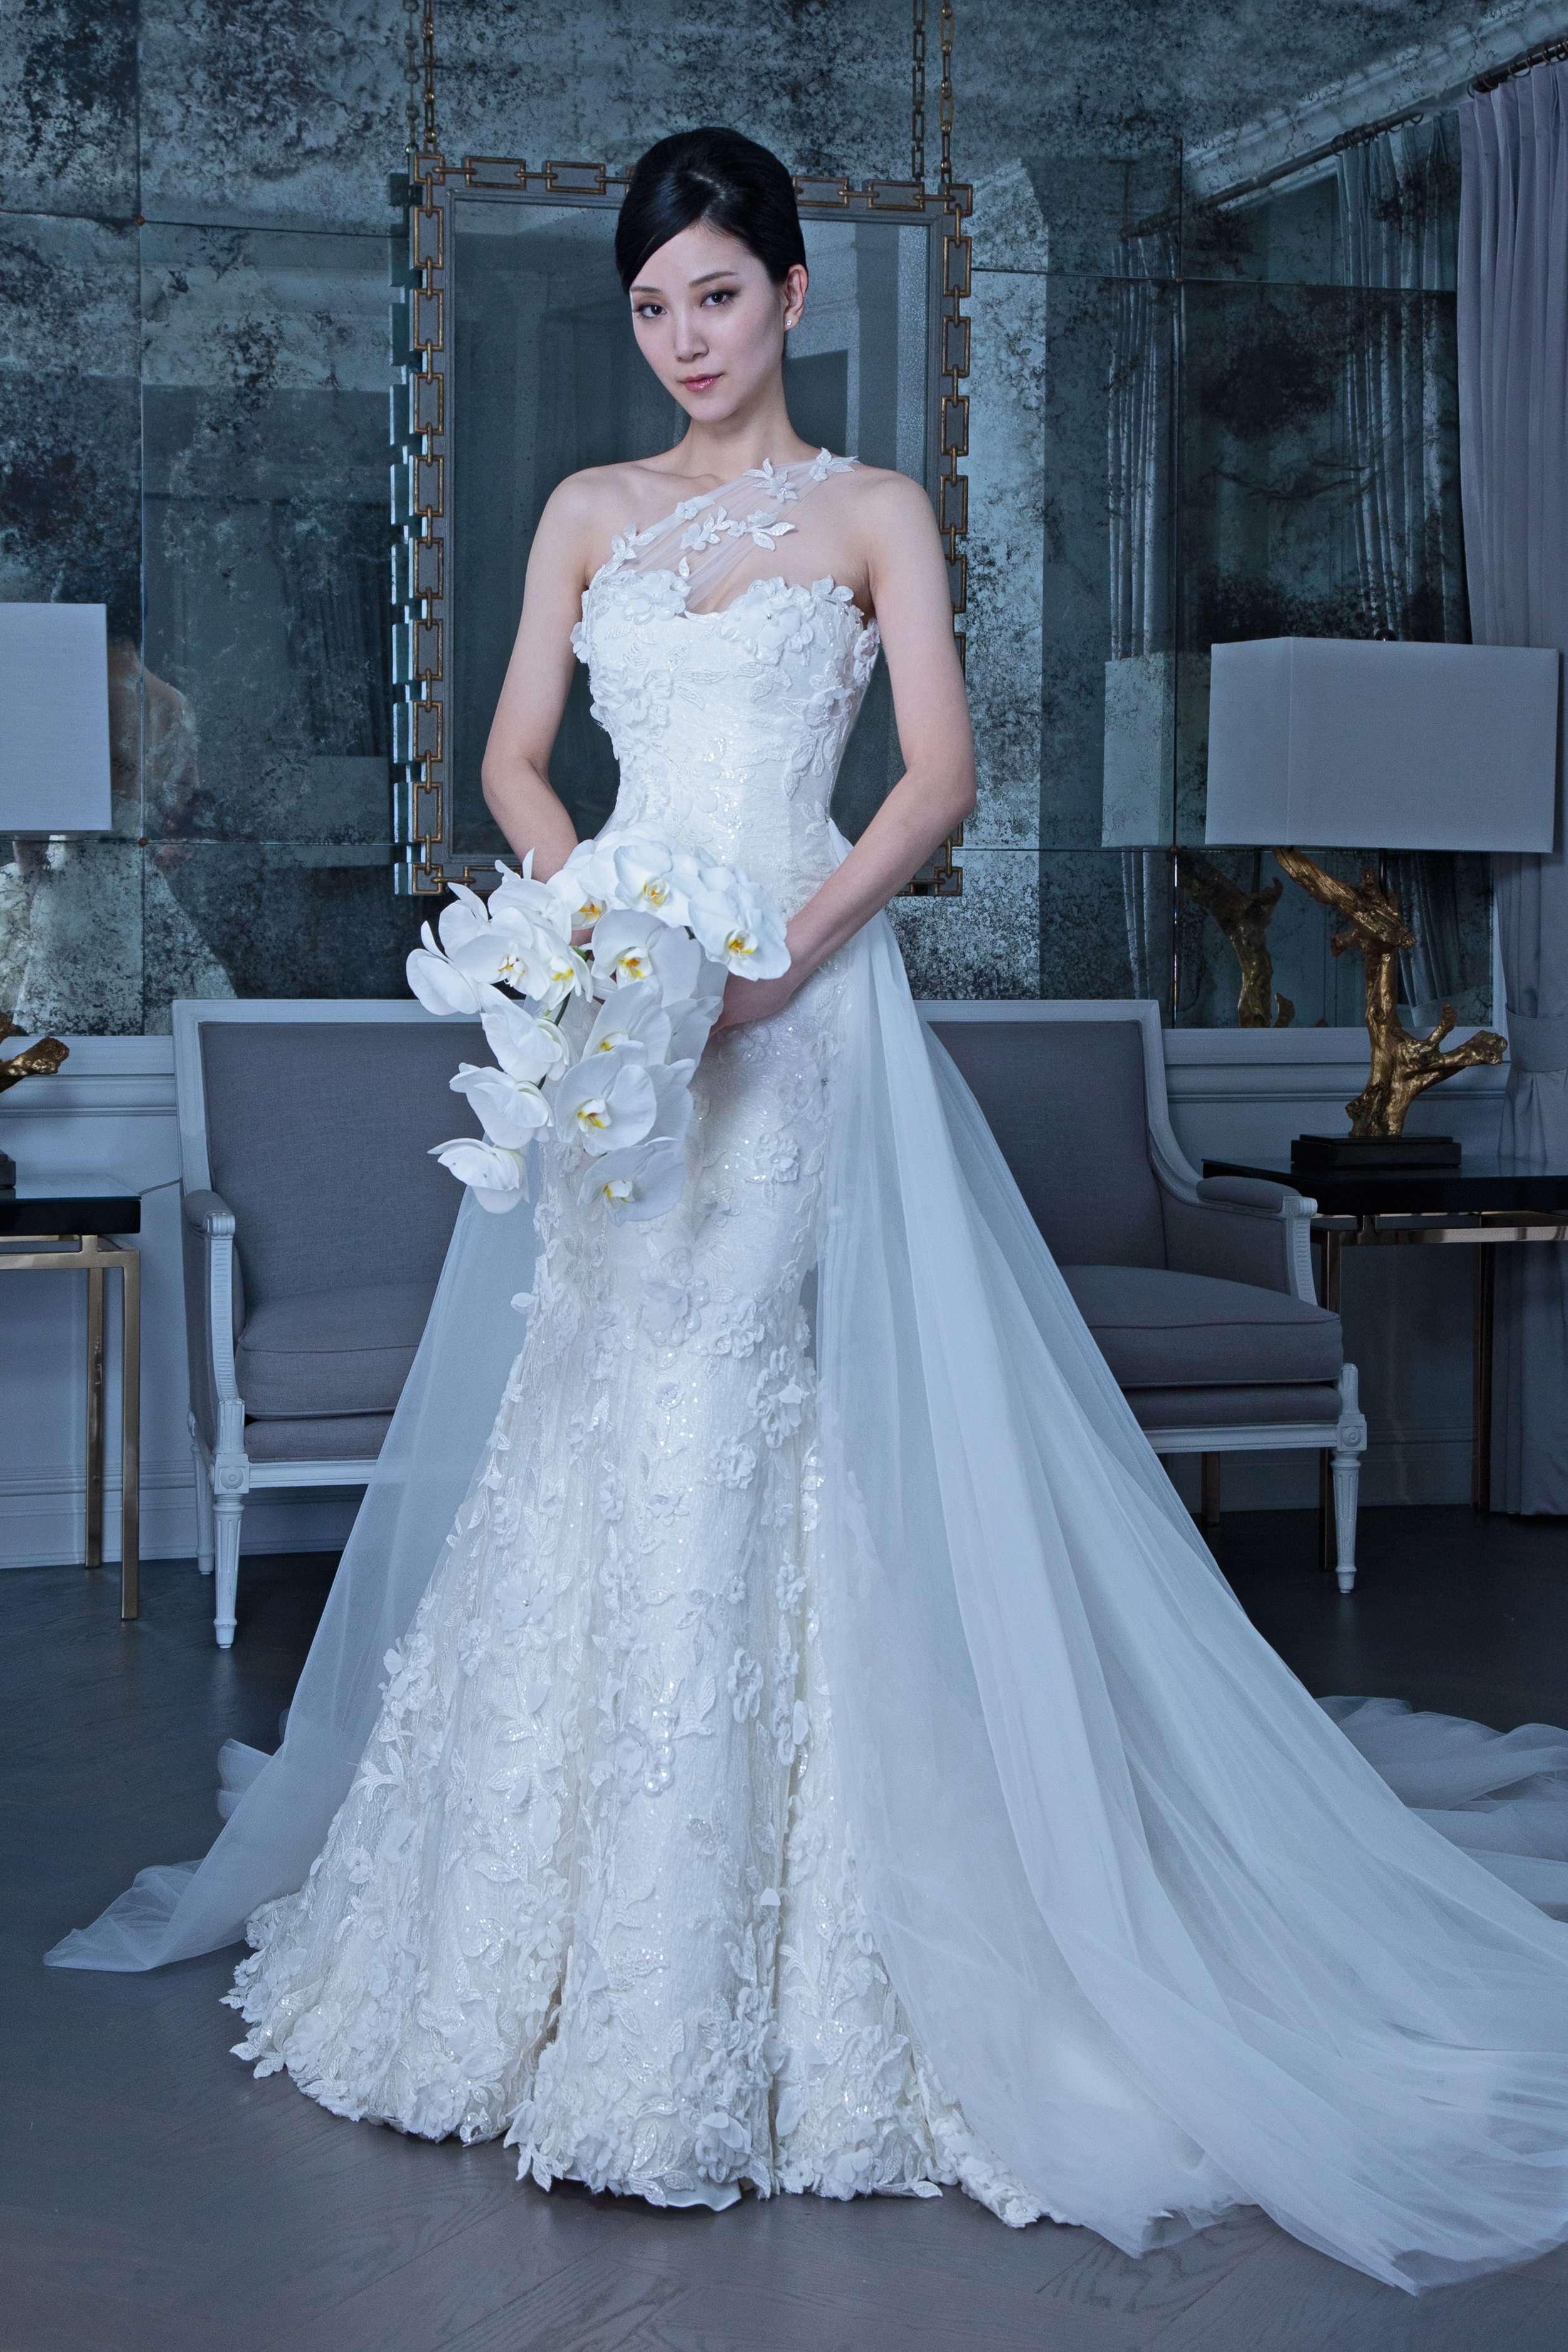 Romona strapless wedding dress with tulle train fall 2019